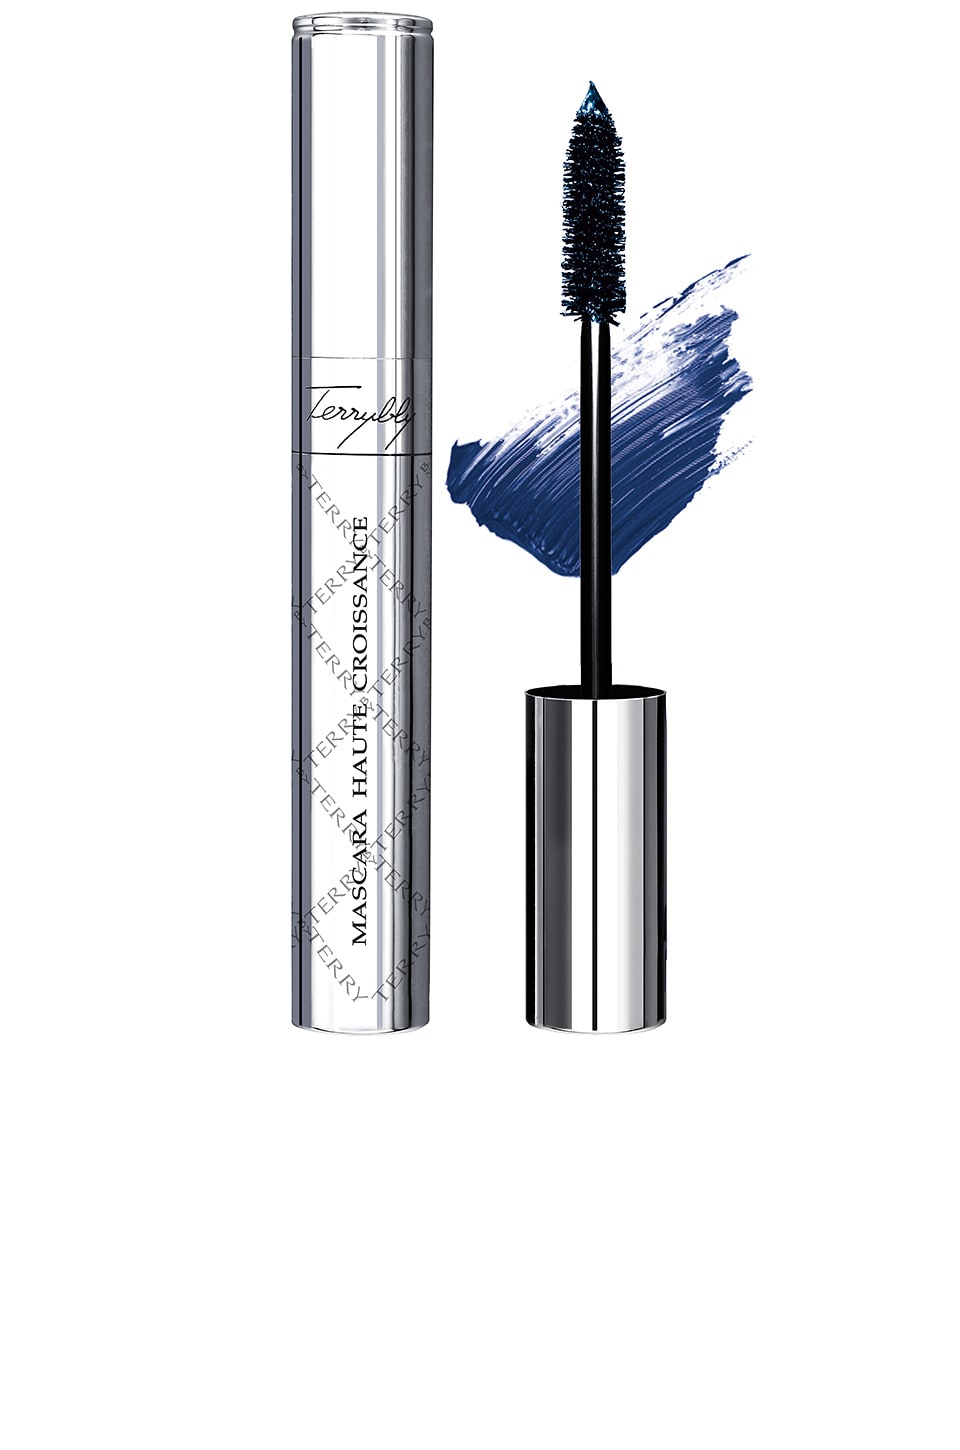 By Terry Terrybly Growth Booster Mascara in Terrybleu